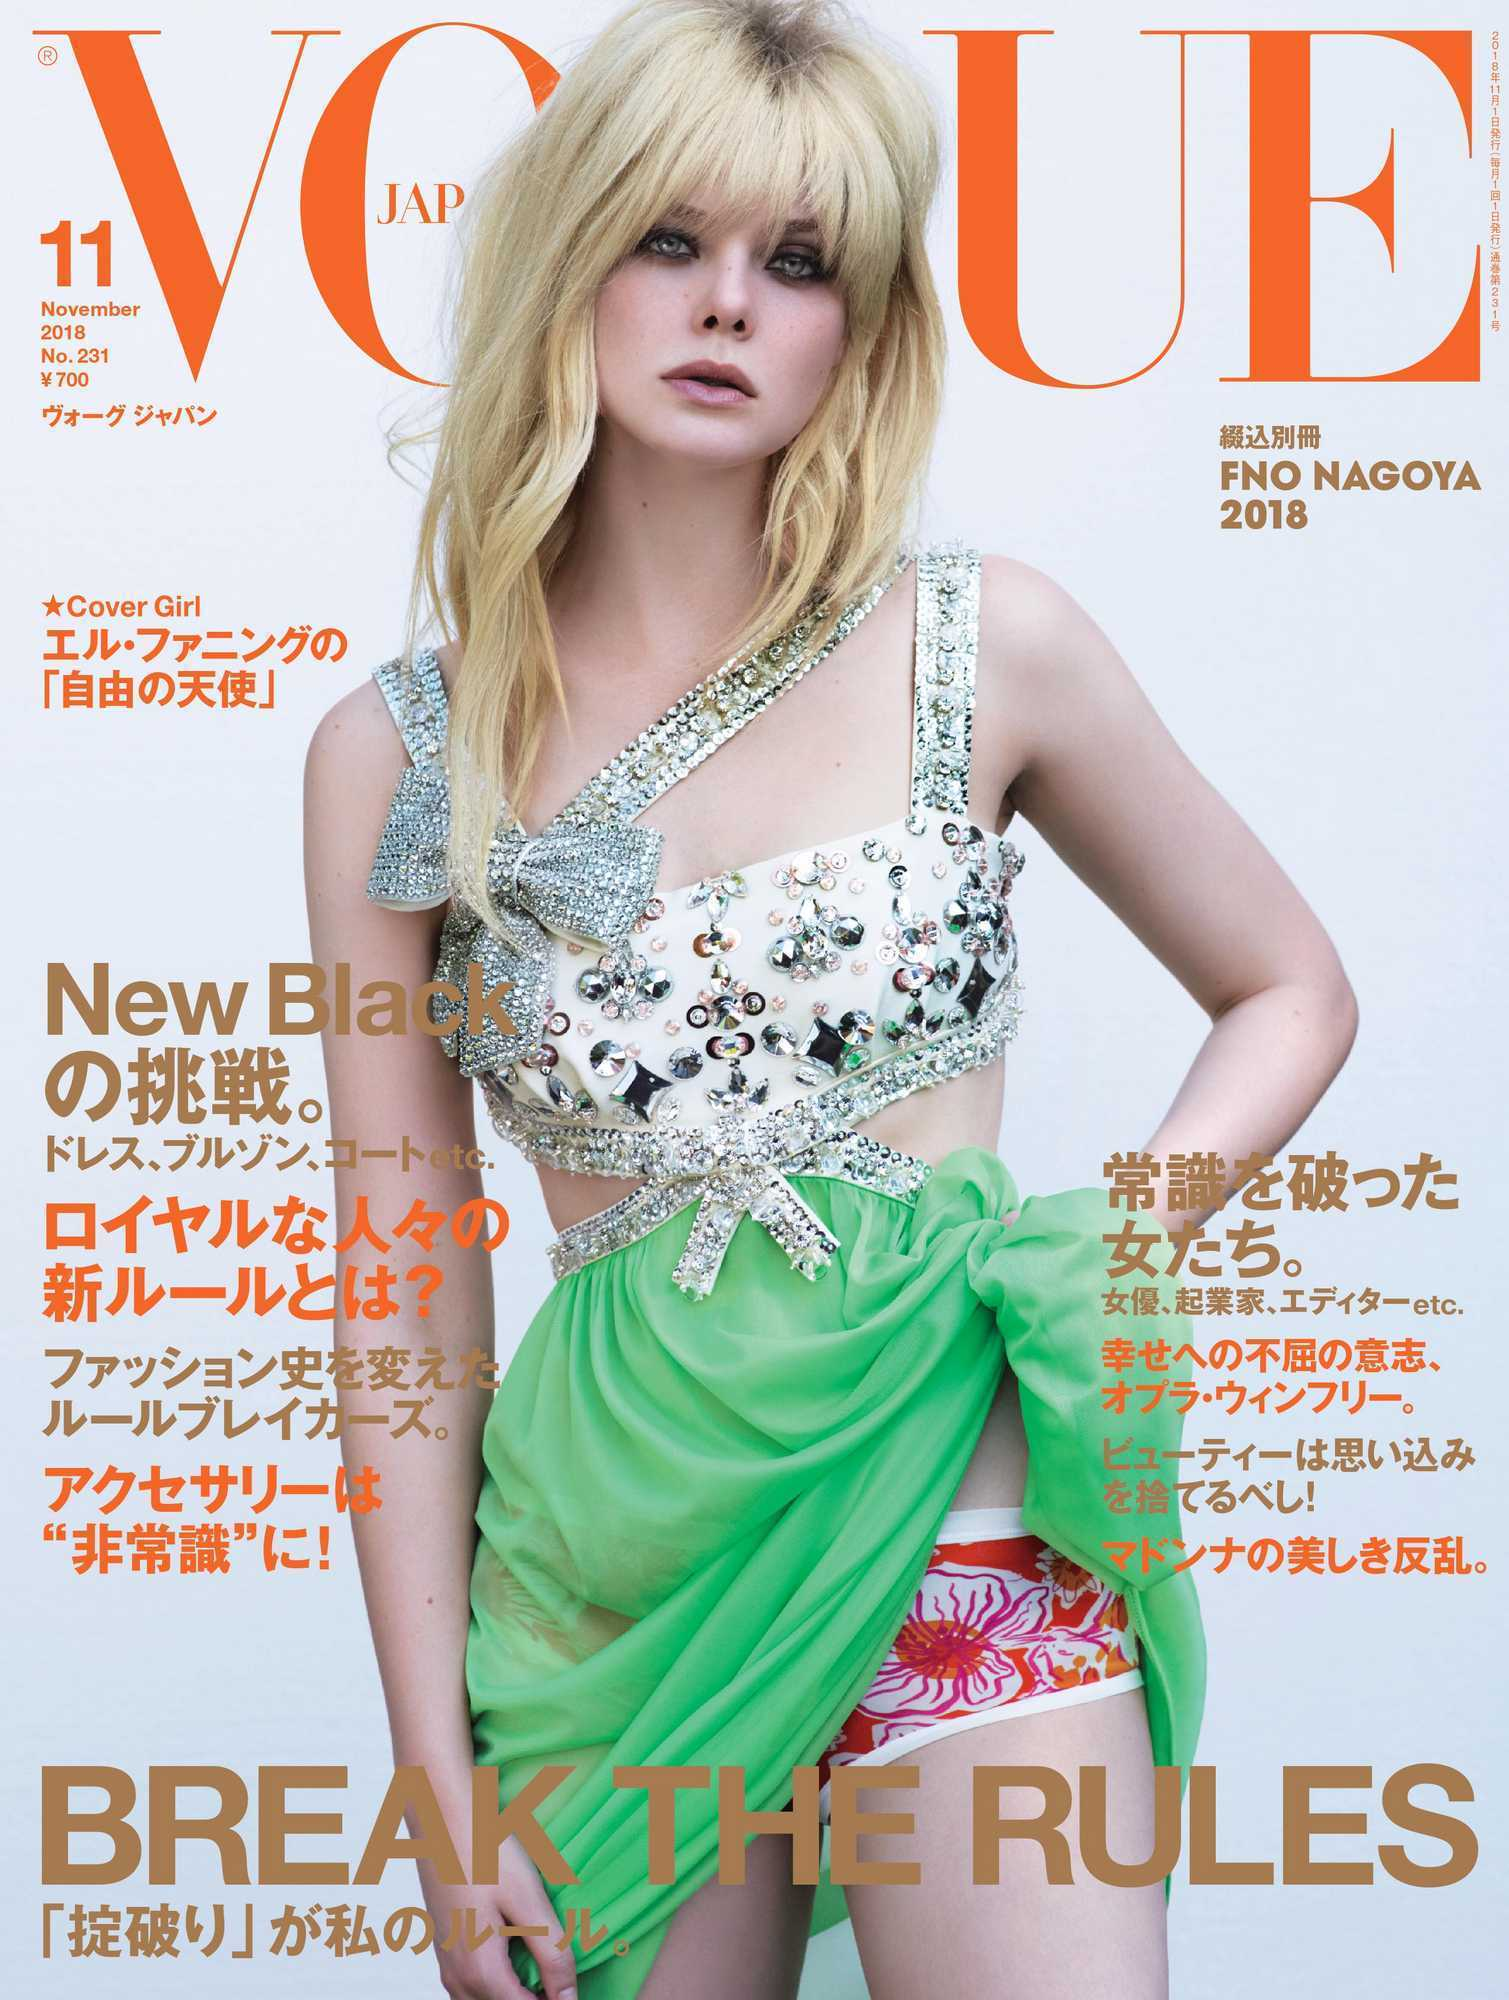 Elle-Fanning-Vogue-Japan-November-201827be52981042834.jpg